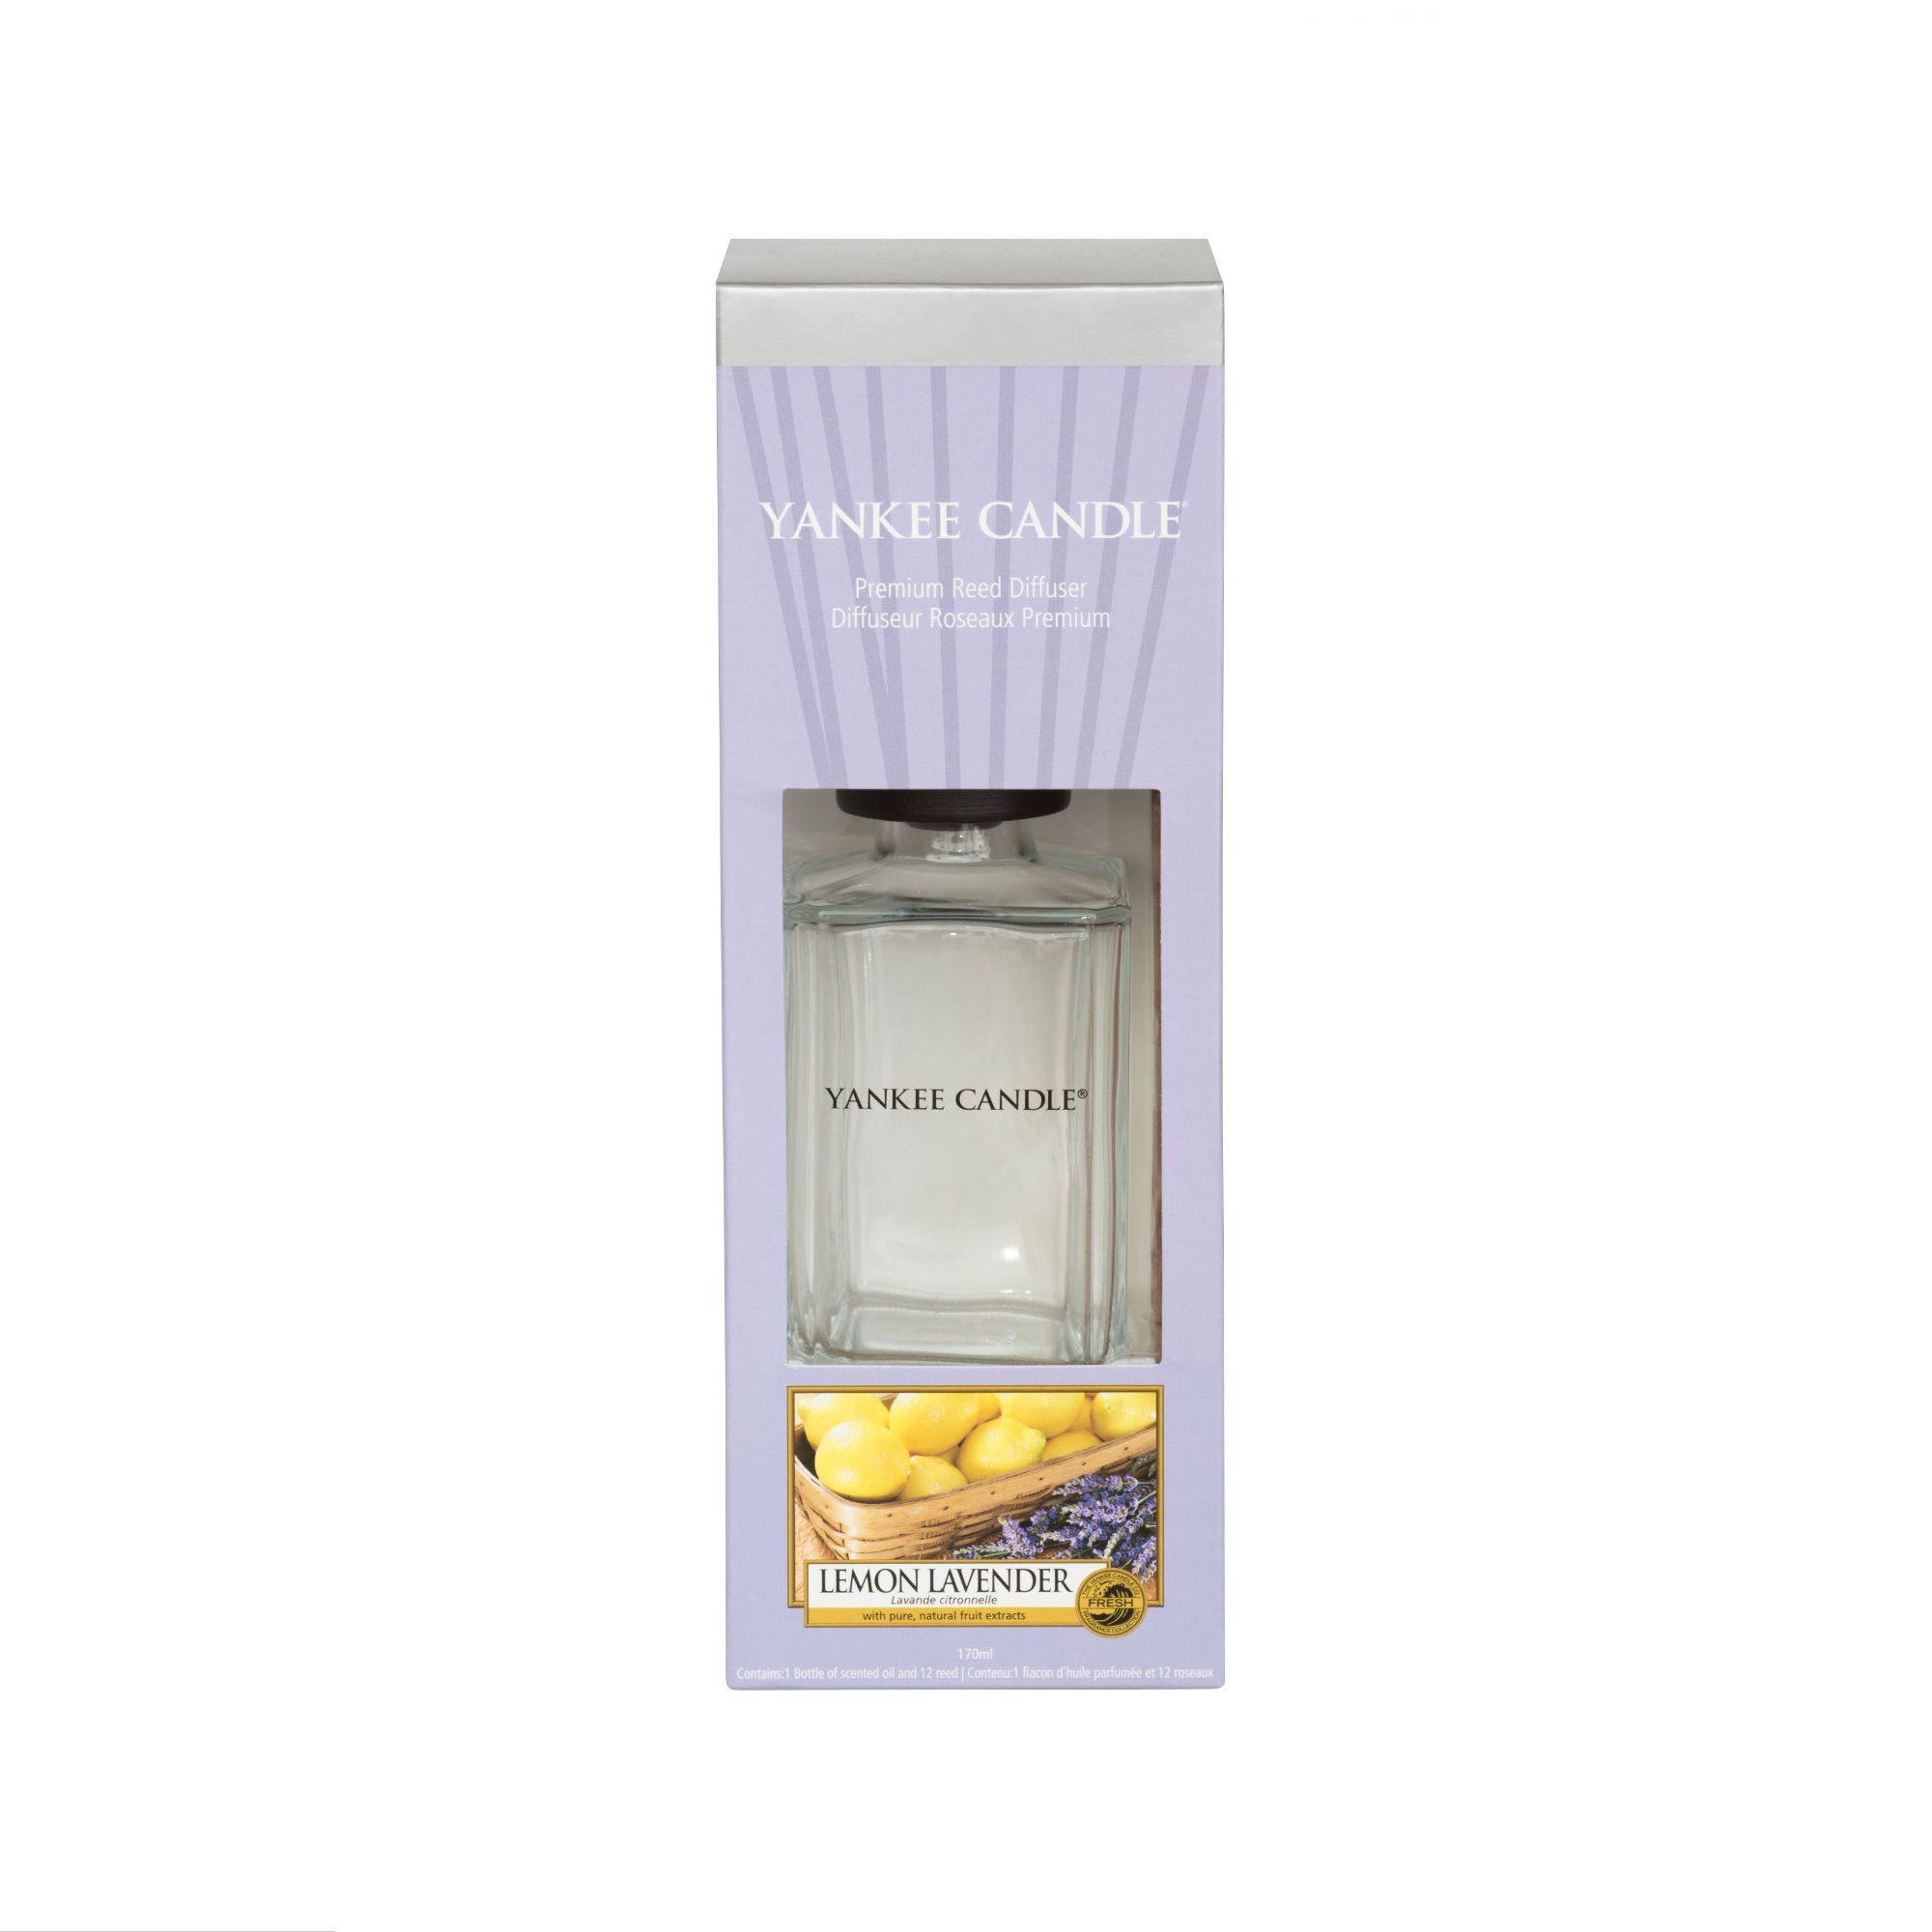 Yankee Candle Lemon Lavender Decor Reeds